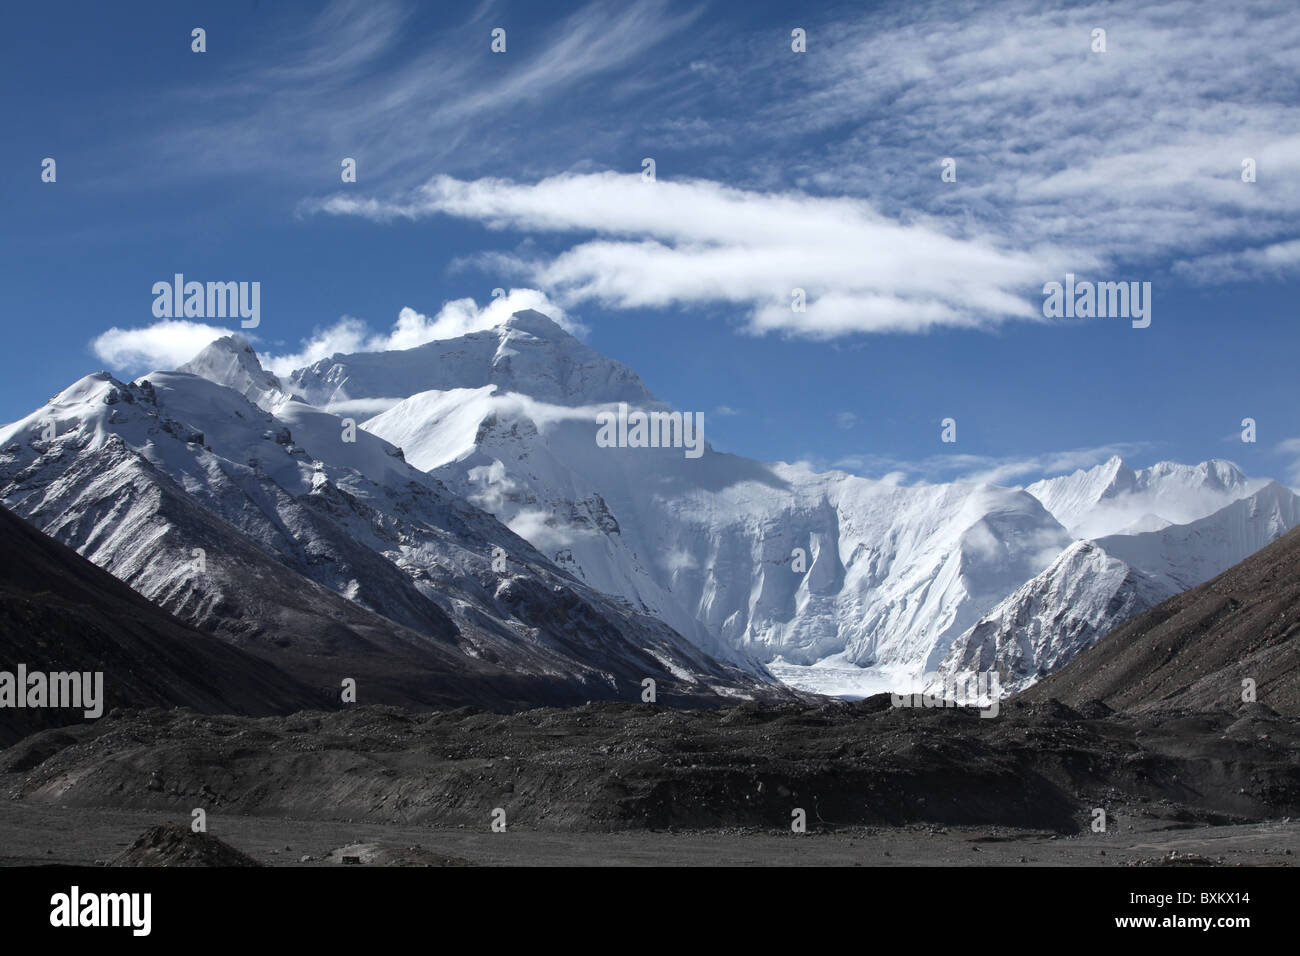 A view of the north face of Everest from base camp in Tibet, China. - Stock Image